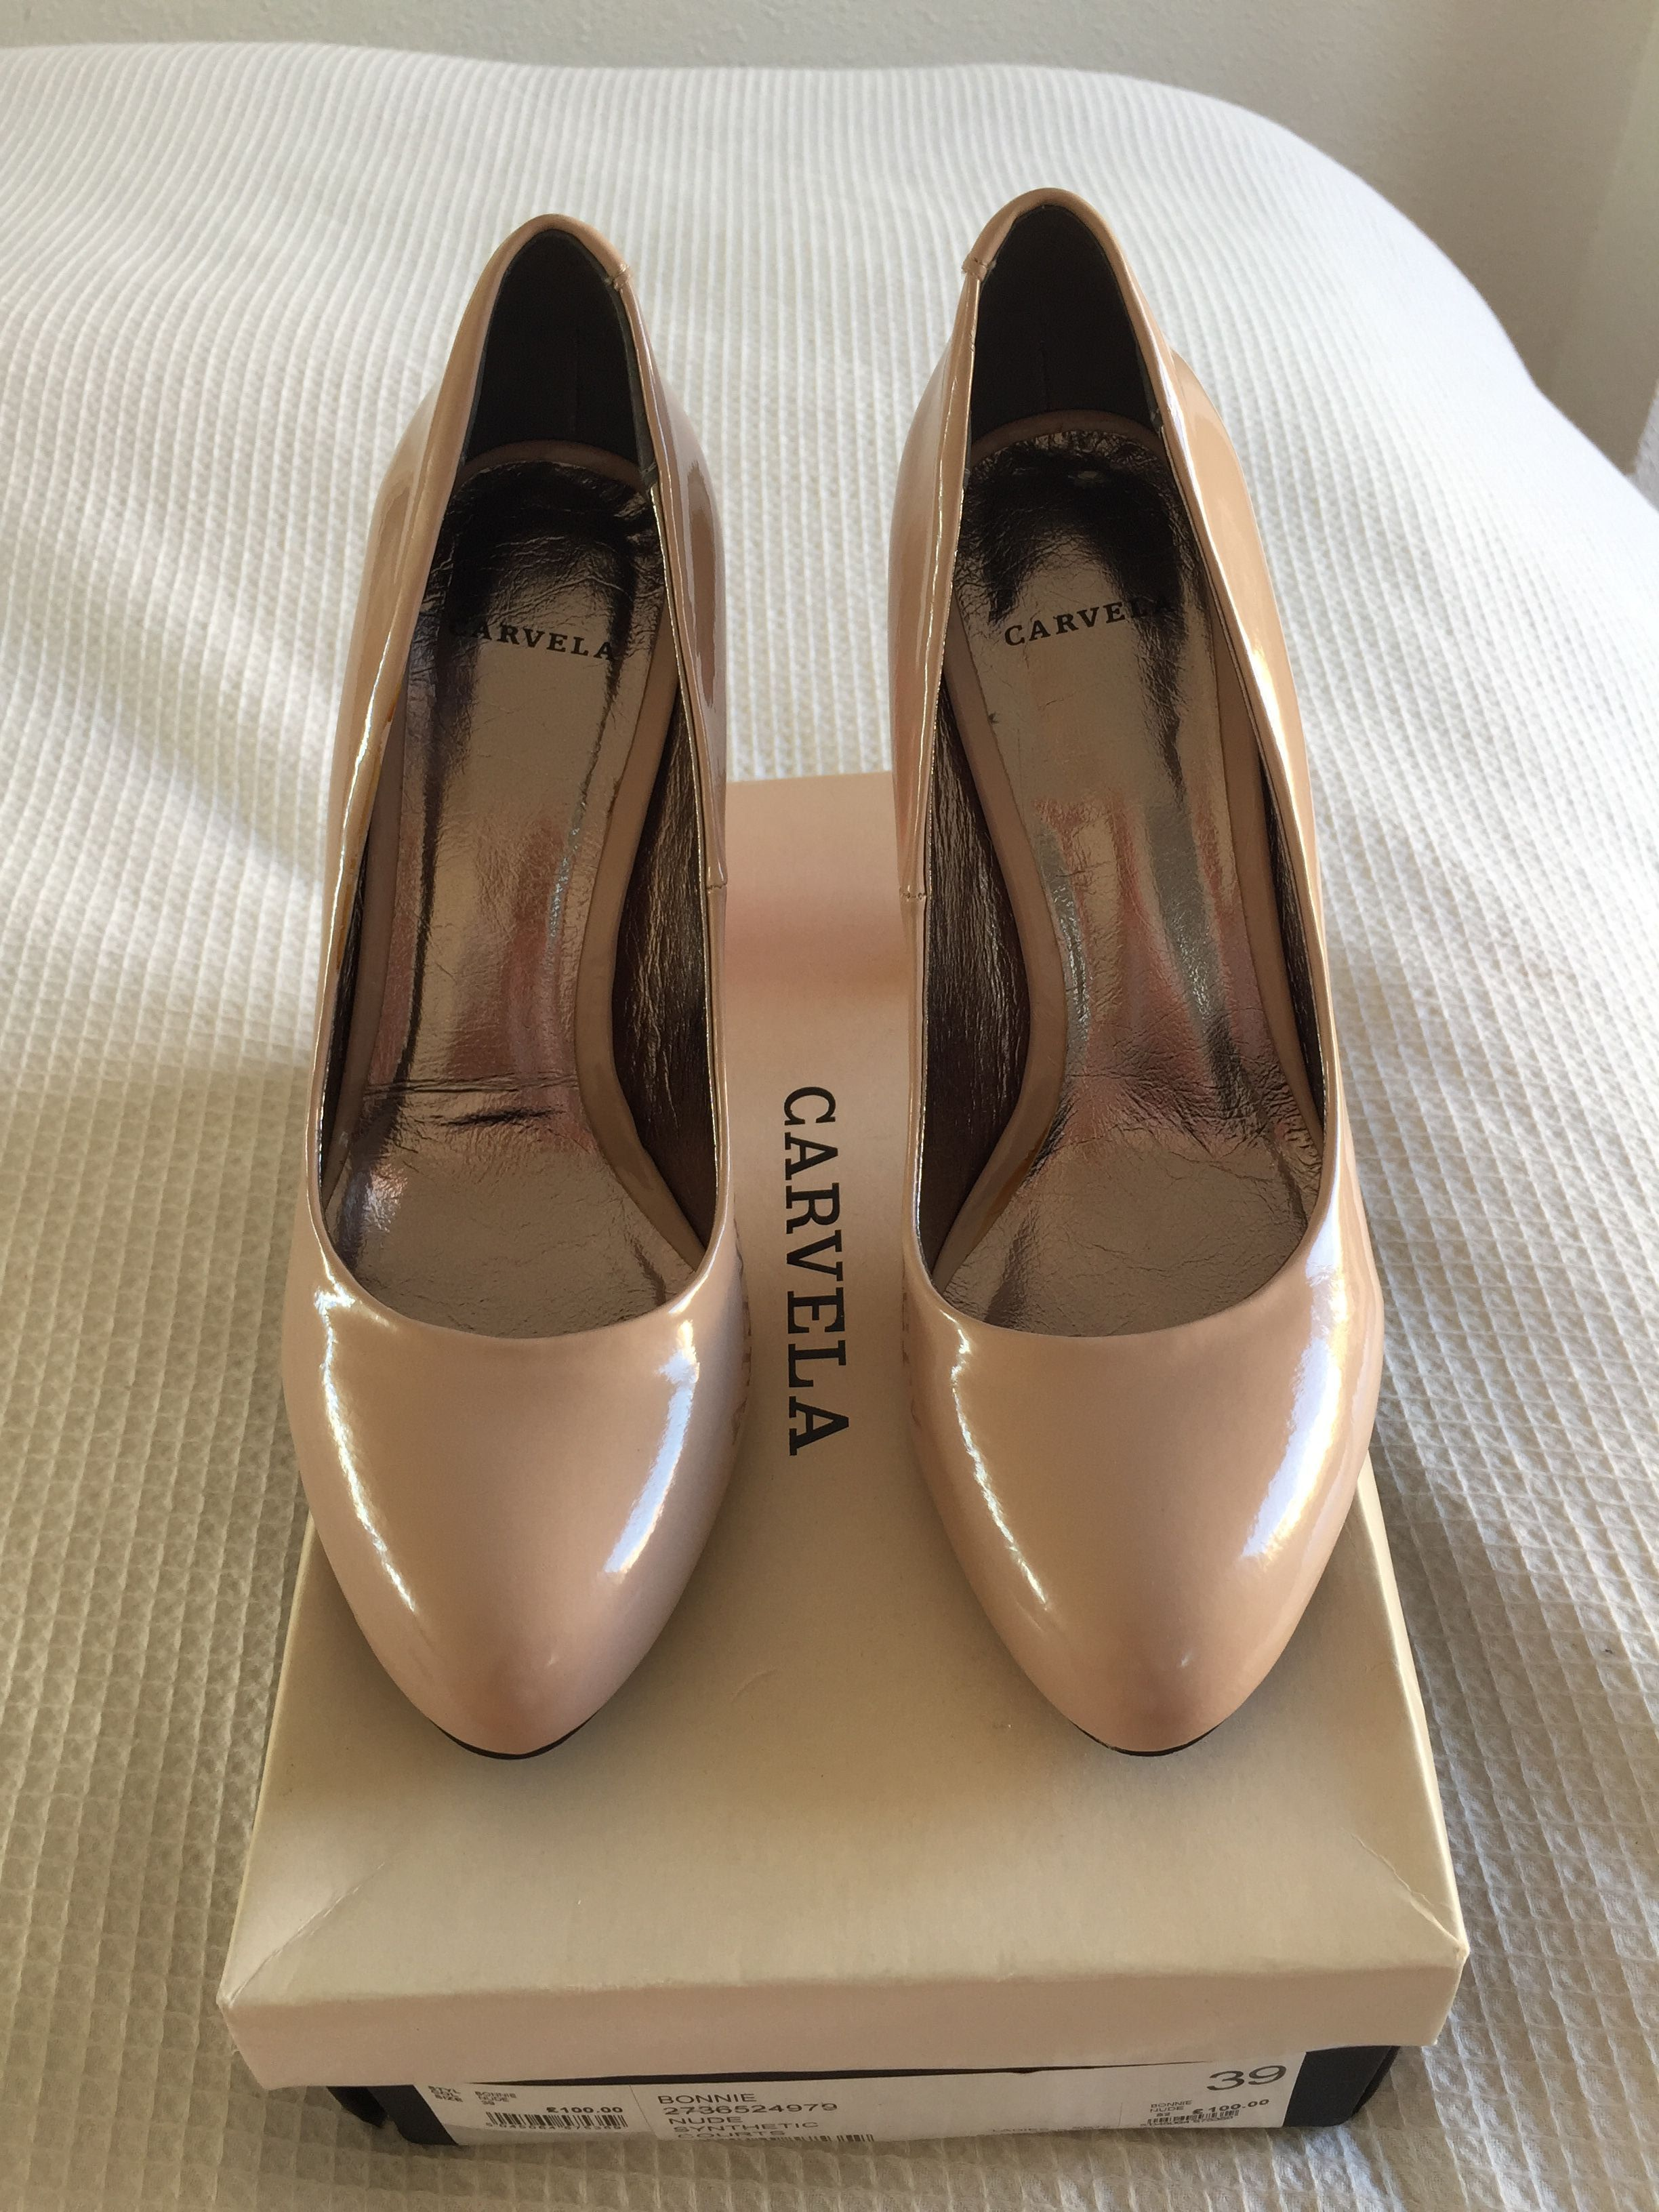 For sale: Carvela nude colour block heels. Brand new in box.